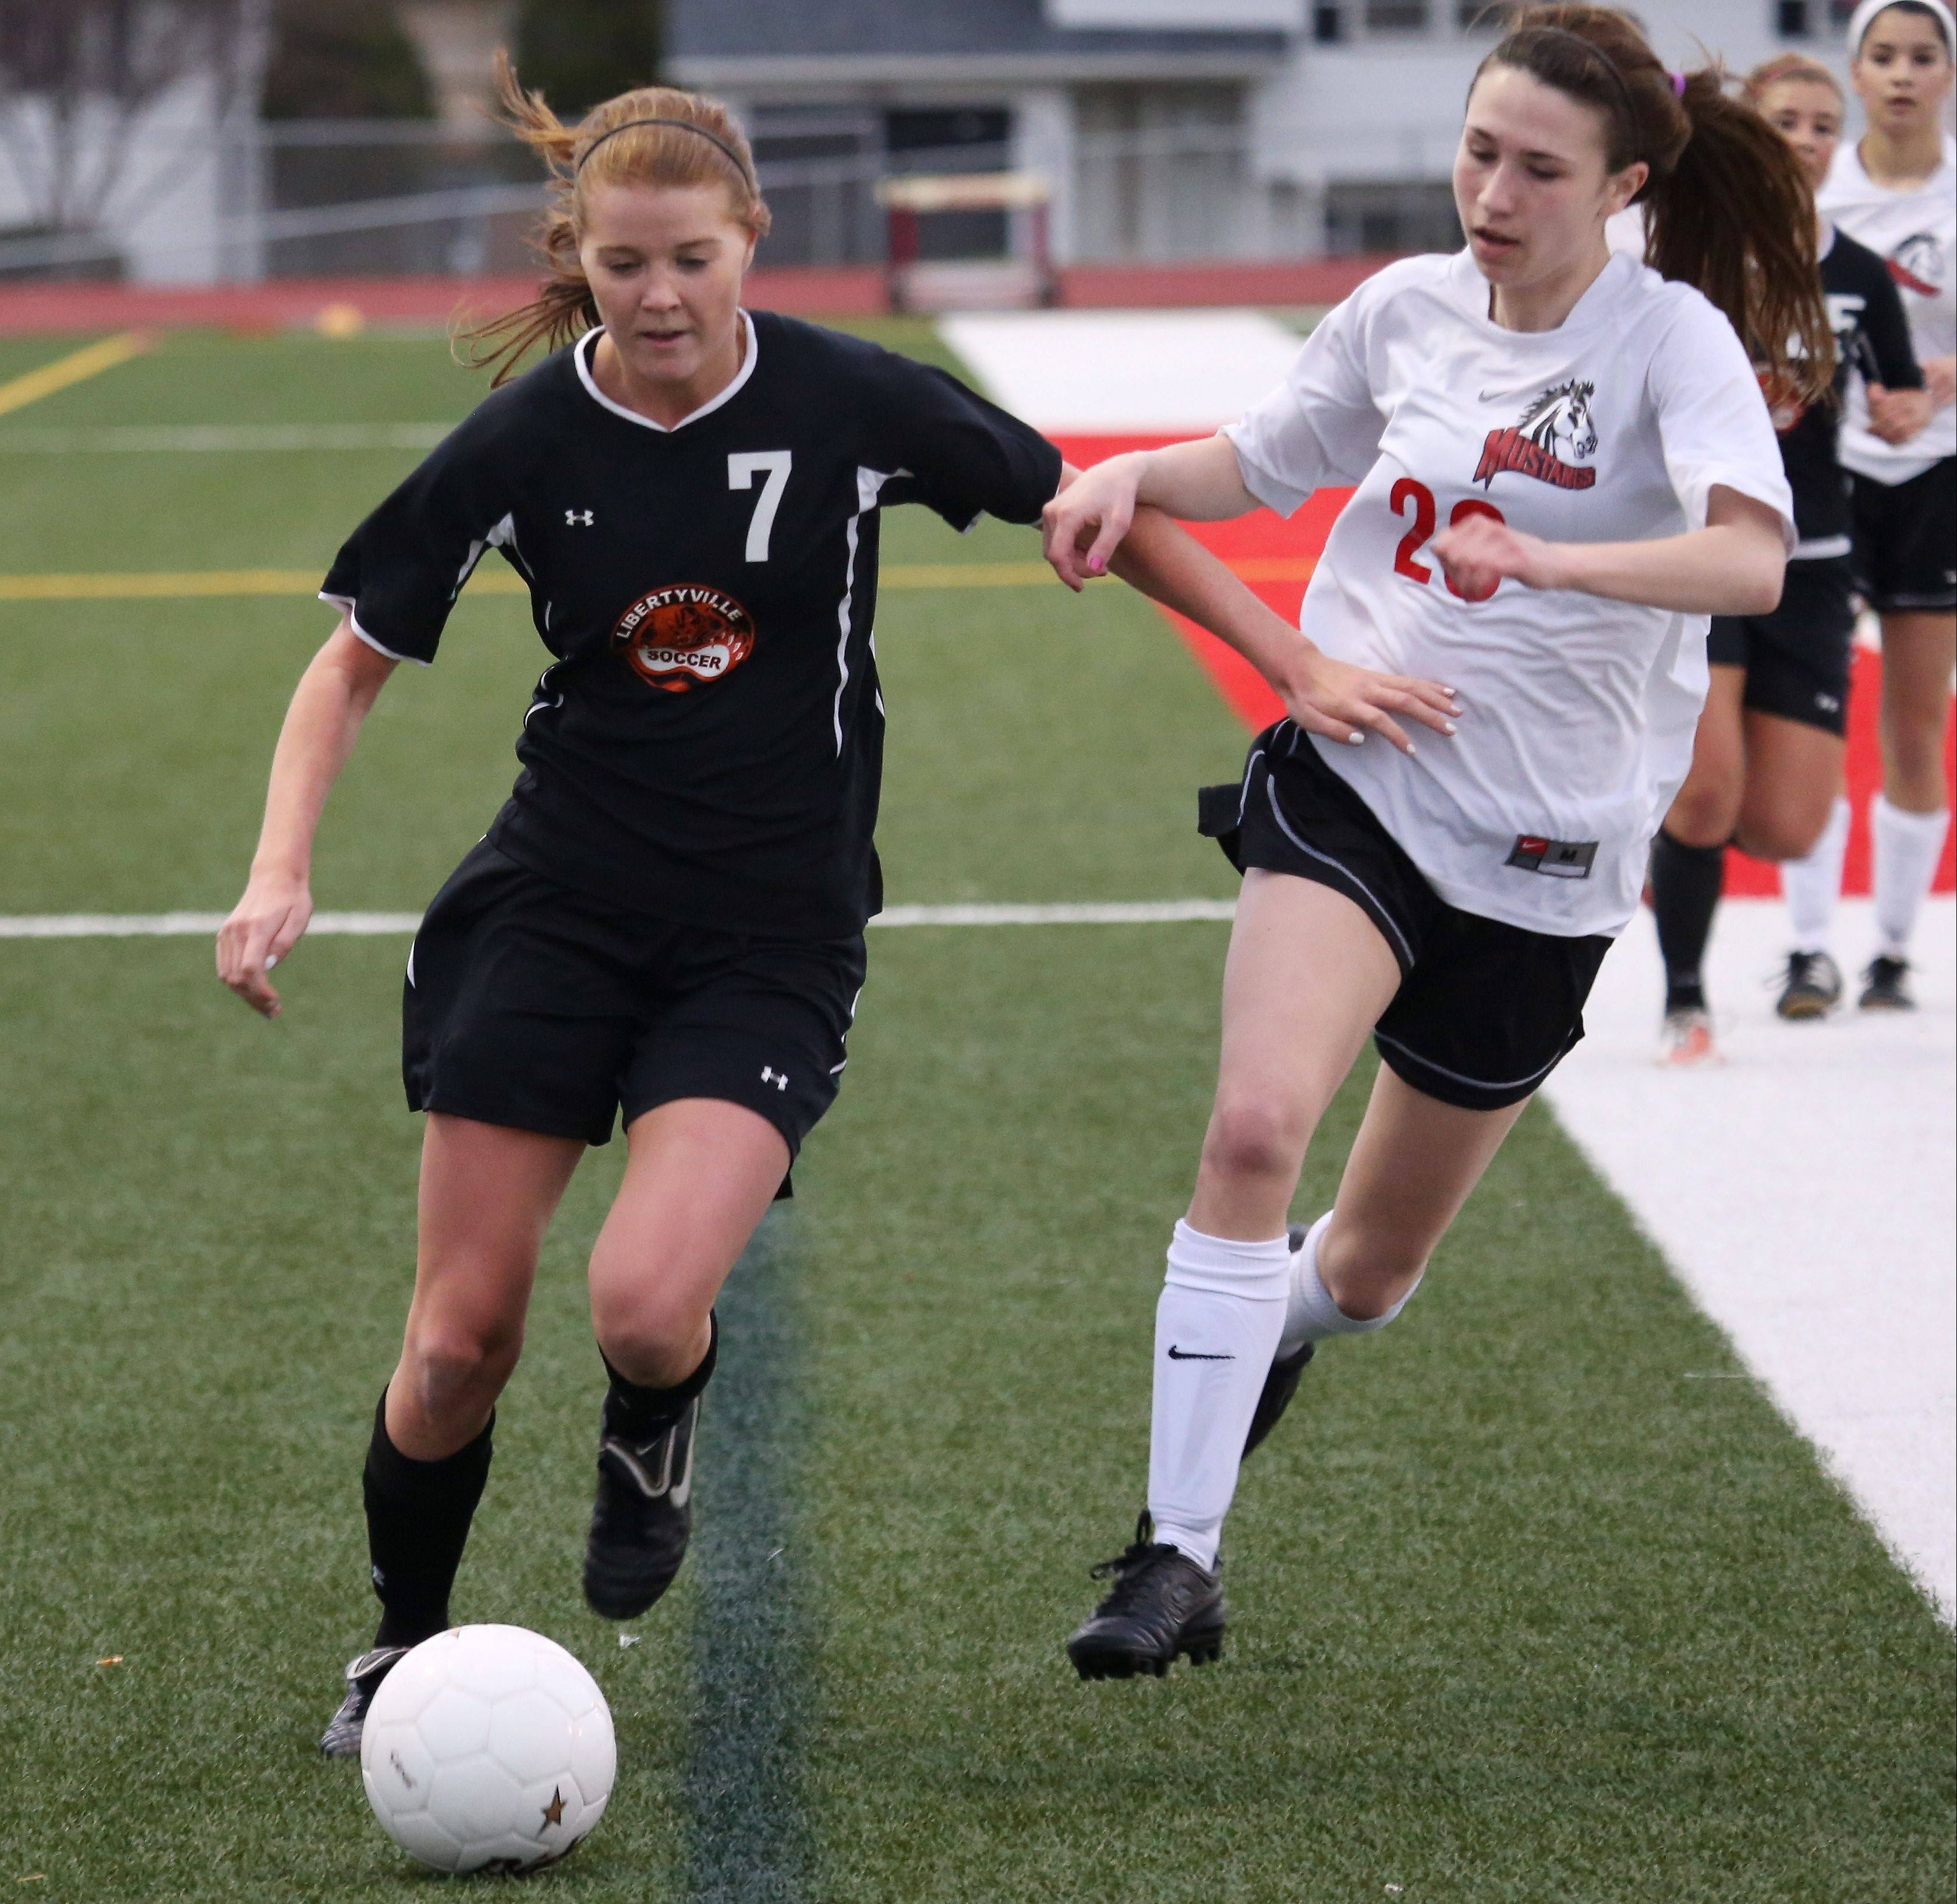 Libertyville forward Katie McAuliffe streaks downfield as Mundelein defender Jessica Schultz gives chase.